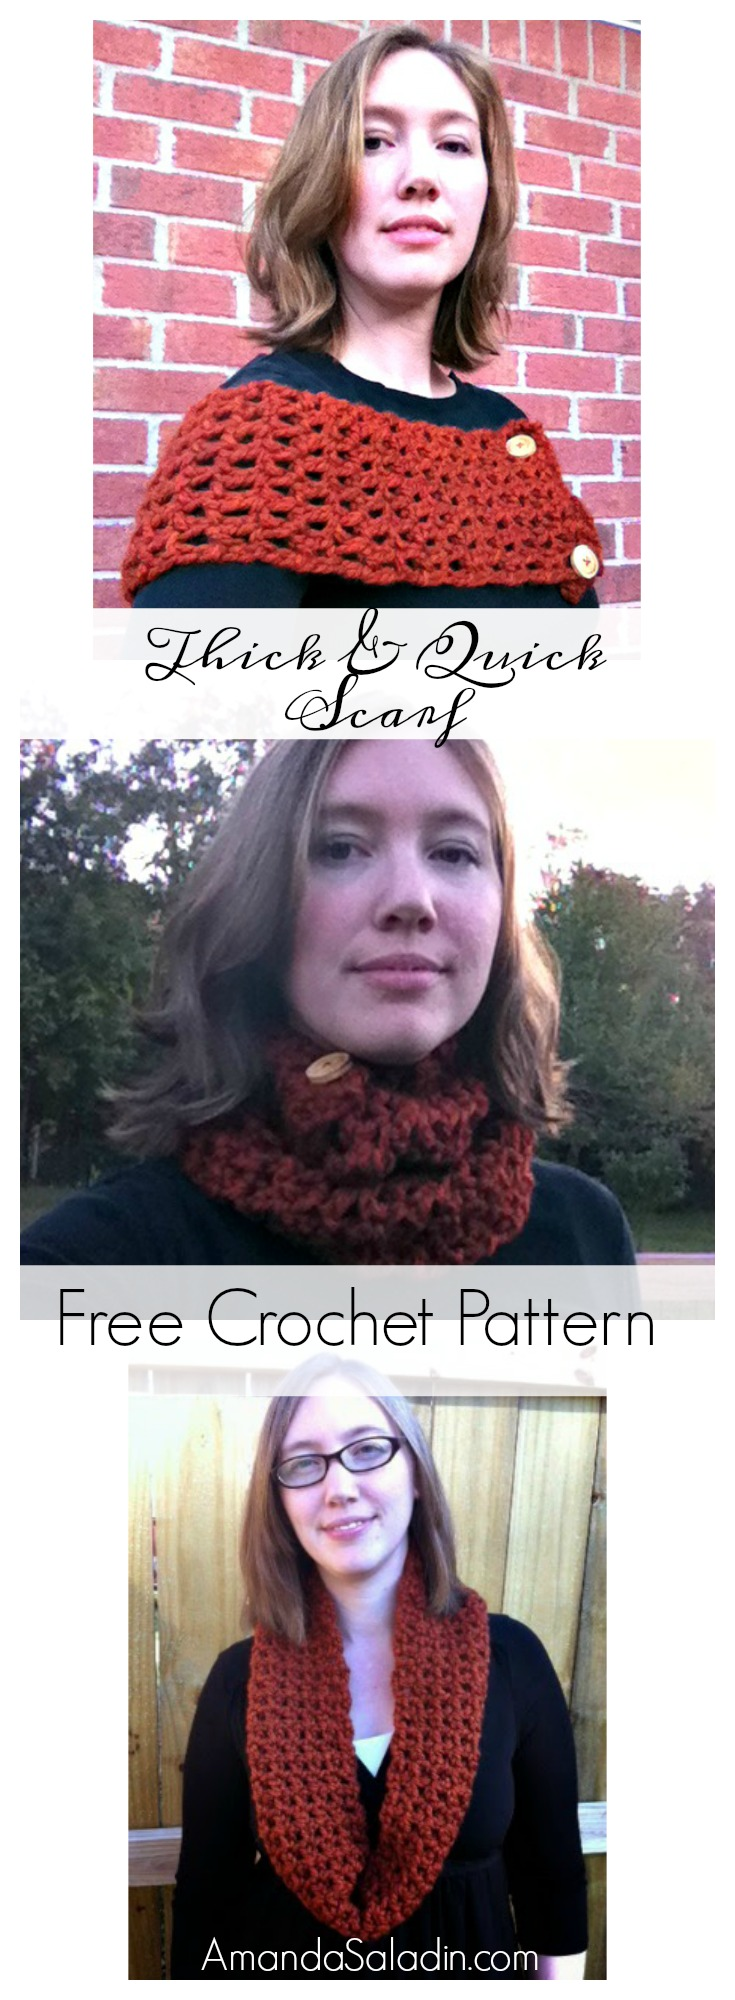 Works up super quickly with super bulky yarn and large hook! Buttons at end give it versatility.